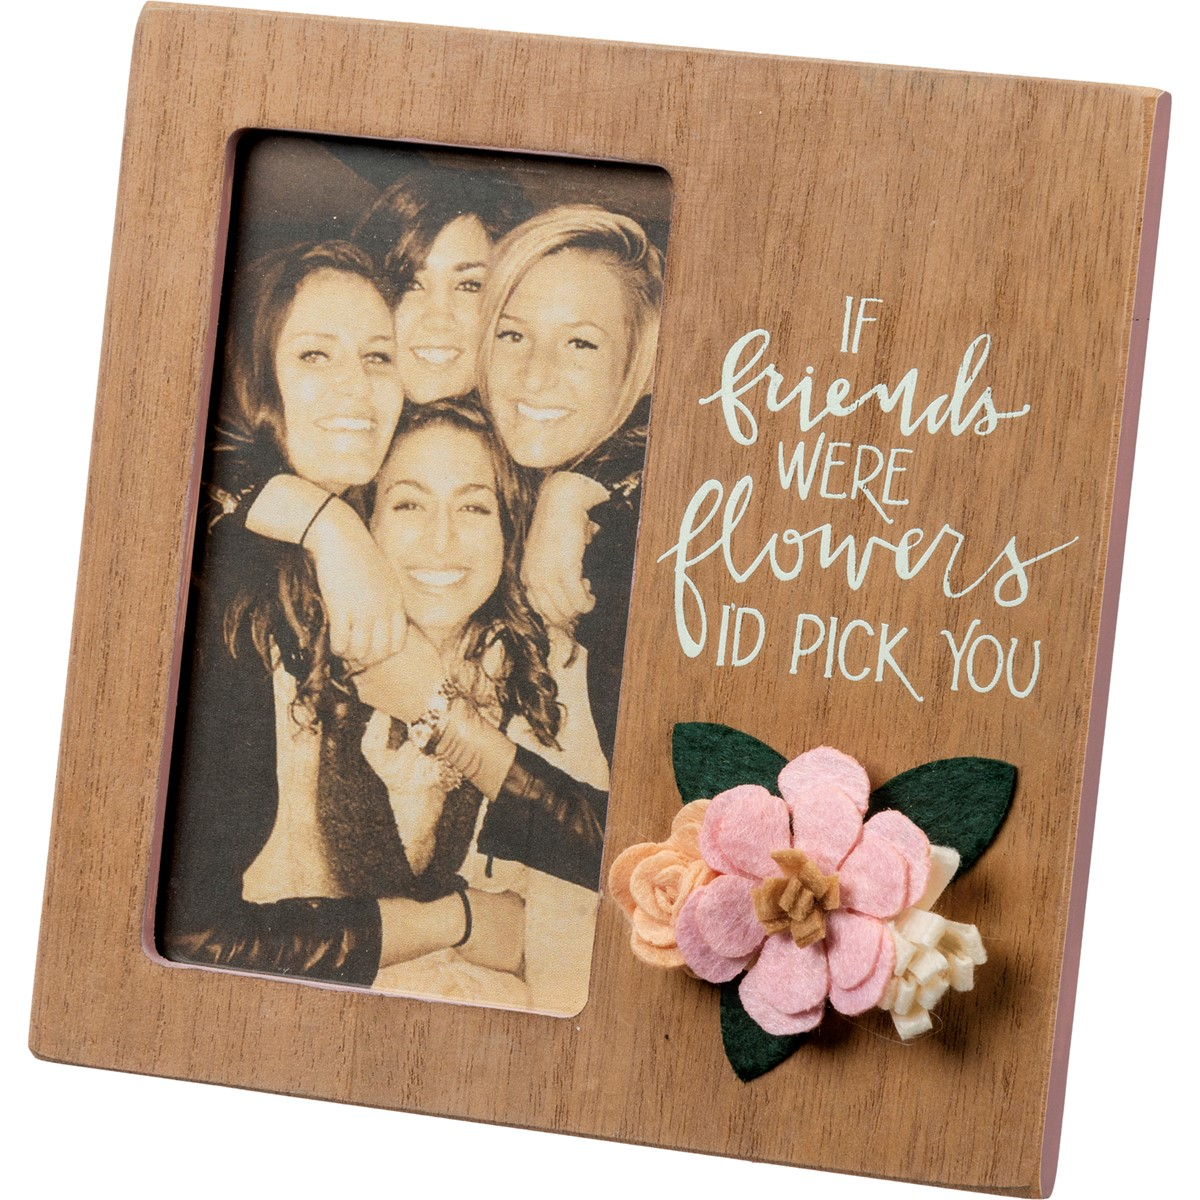 "Plaque Frame -If Friends Were Flowers I'd Pick You - 6"" x 6"" x 0.25"", Fits 3"" x 5"" Photo - Wood, Felt, Glass, Metal"